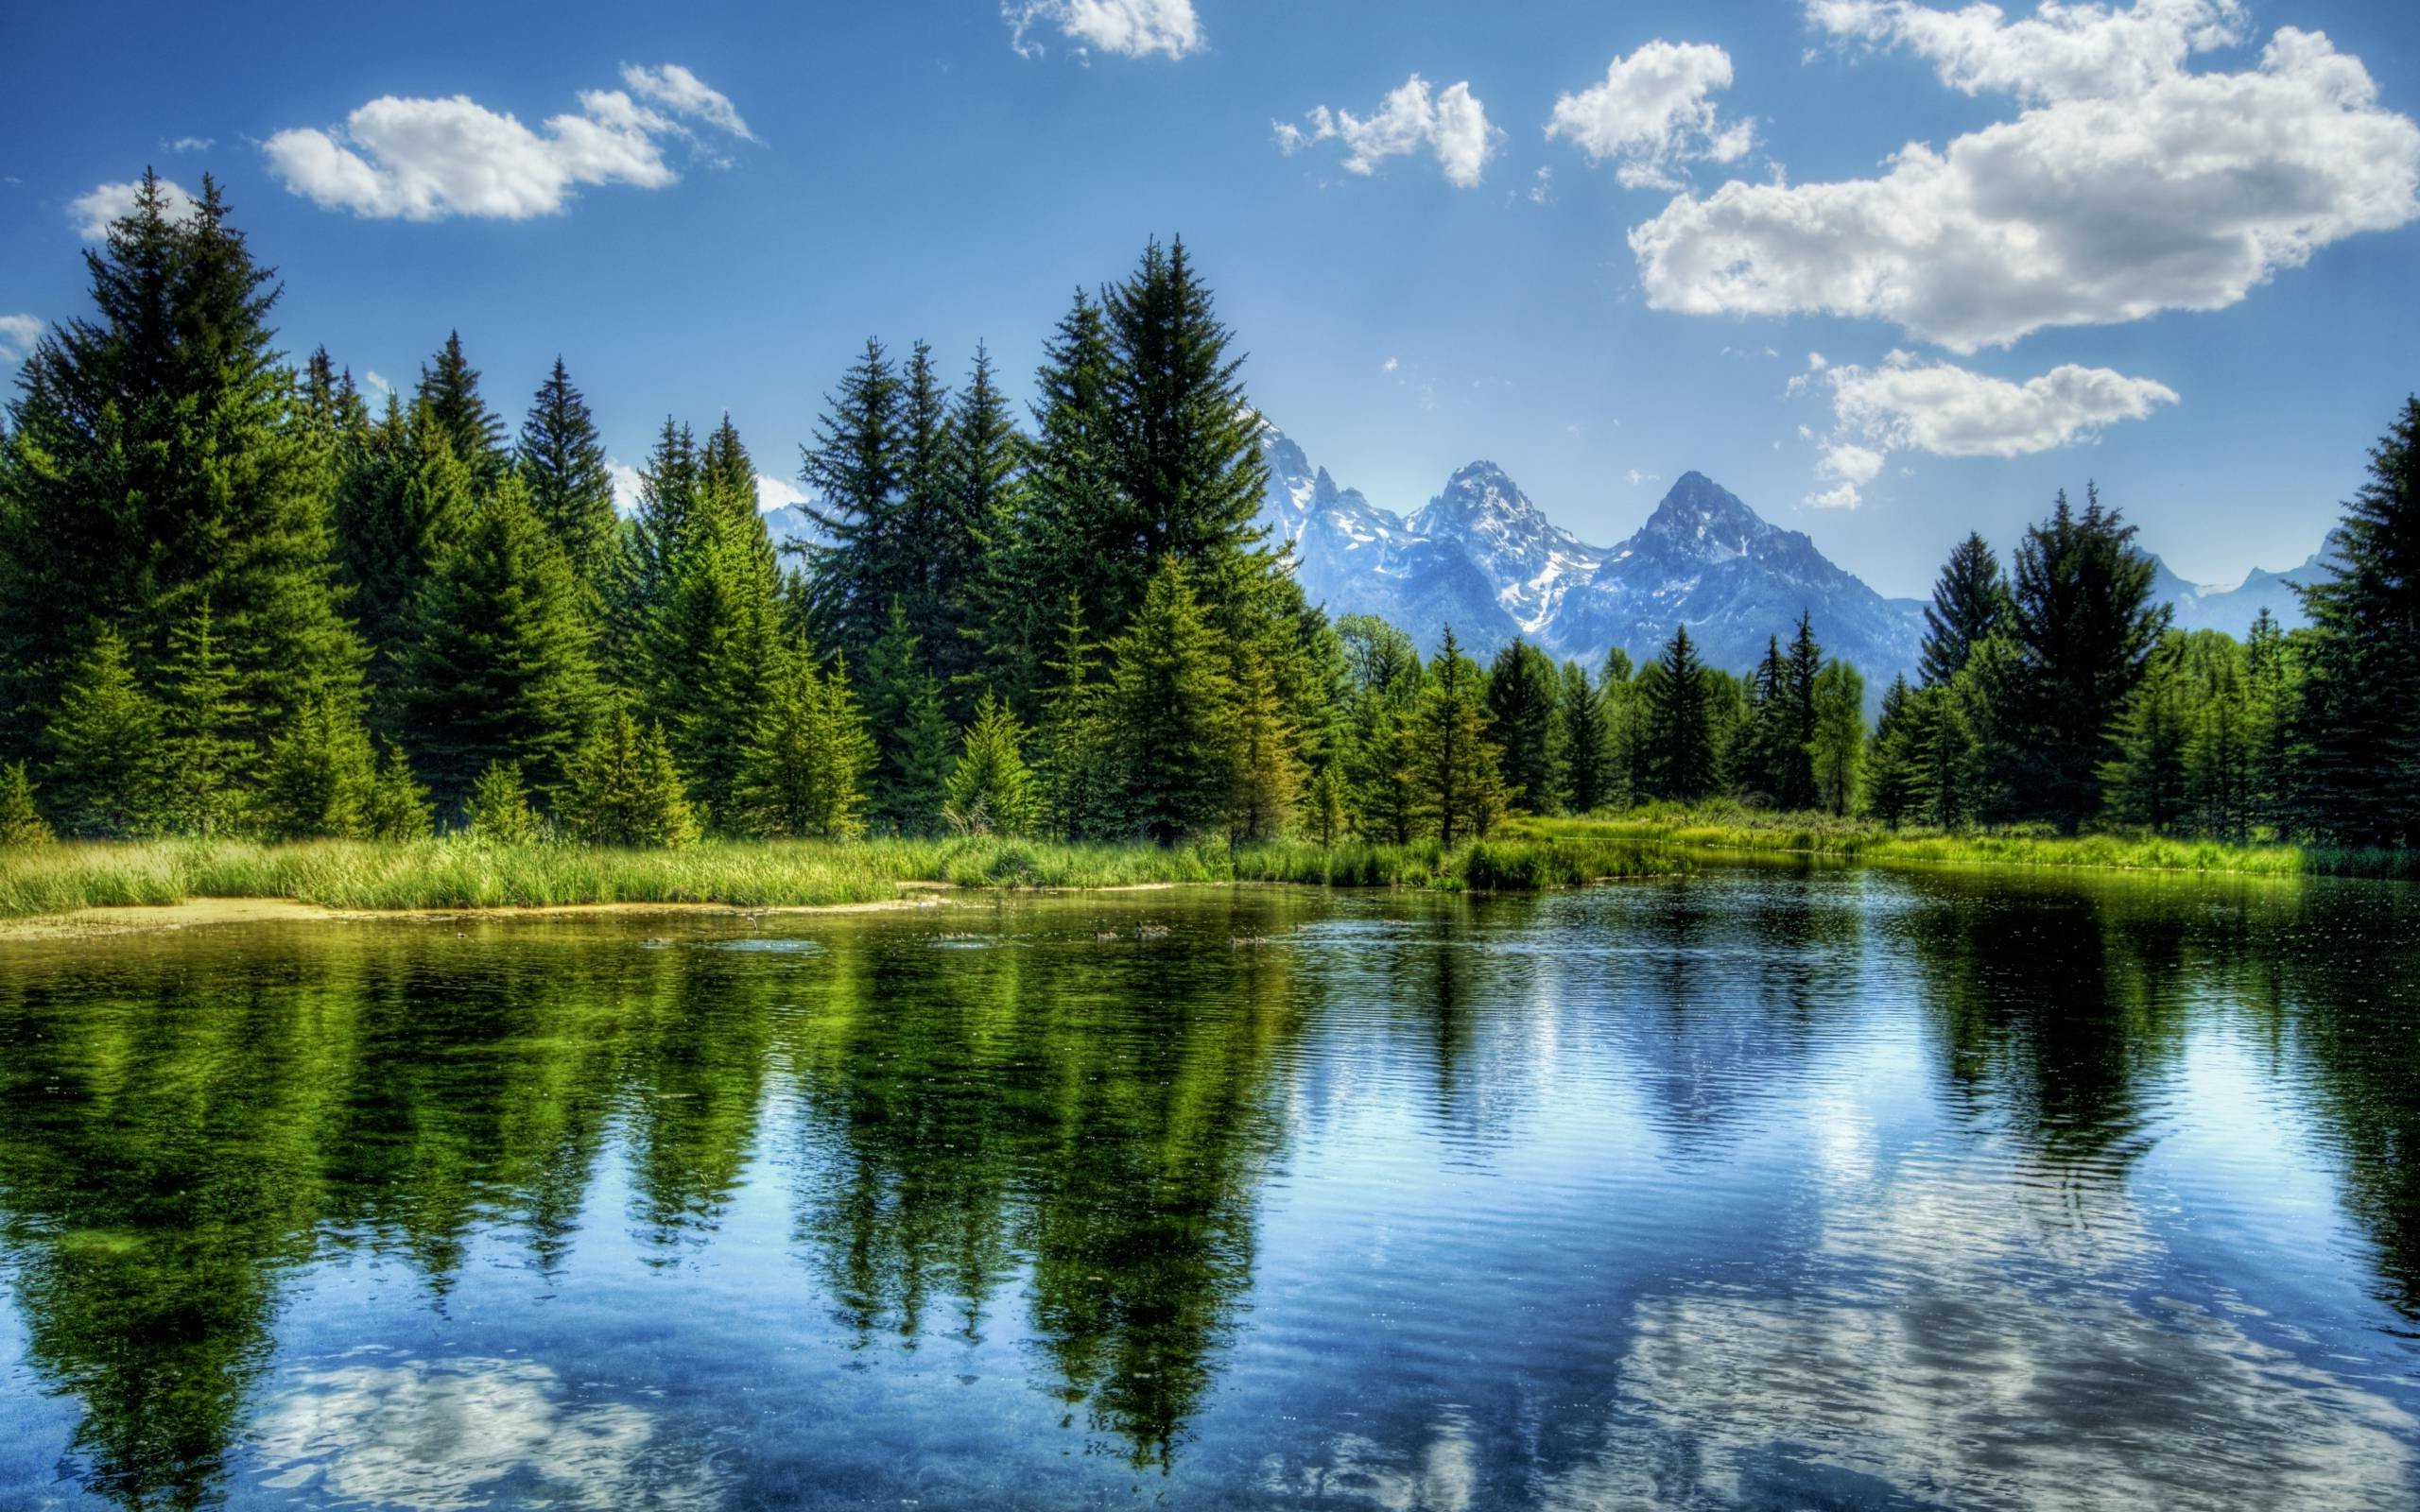 Nature, Hdr, River, Trees, Mountain, Landscape Wallpapers - Trees And Mountain Landscape , HD Wallpaper & Backgrounds